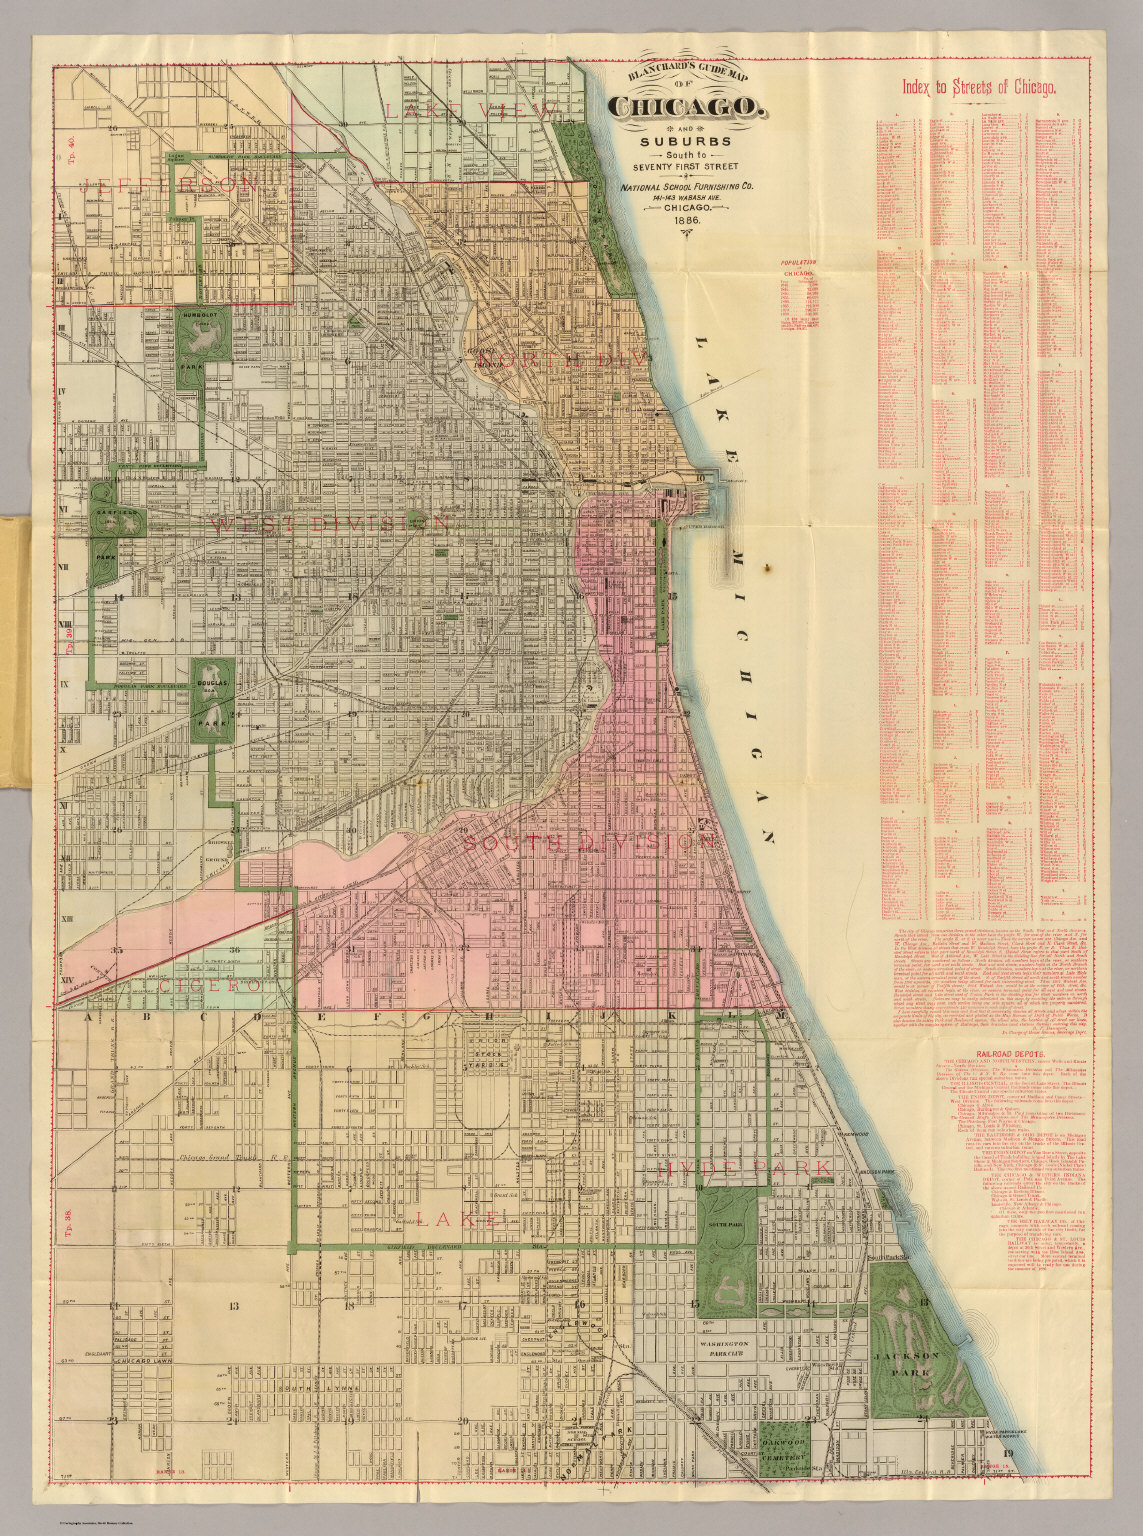 Blanchards guide map of Chicago  David Rumsey Historical Map